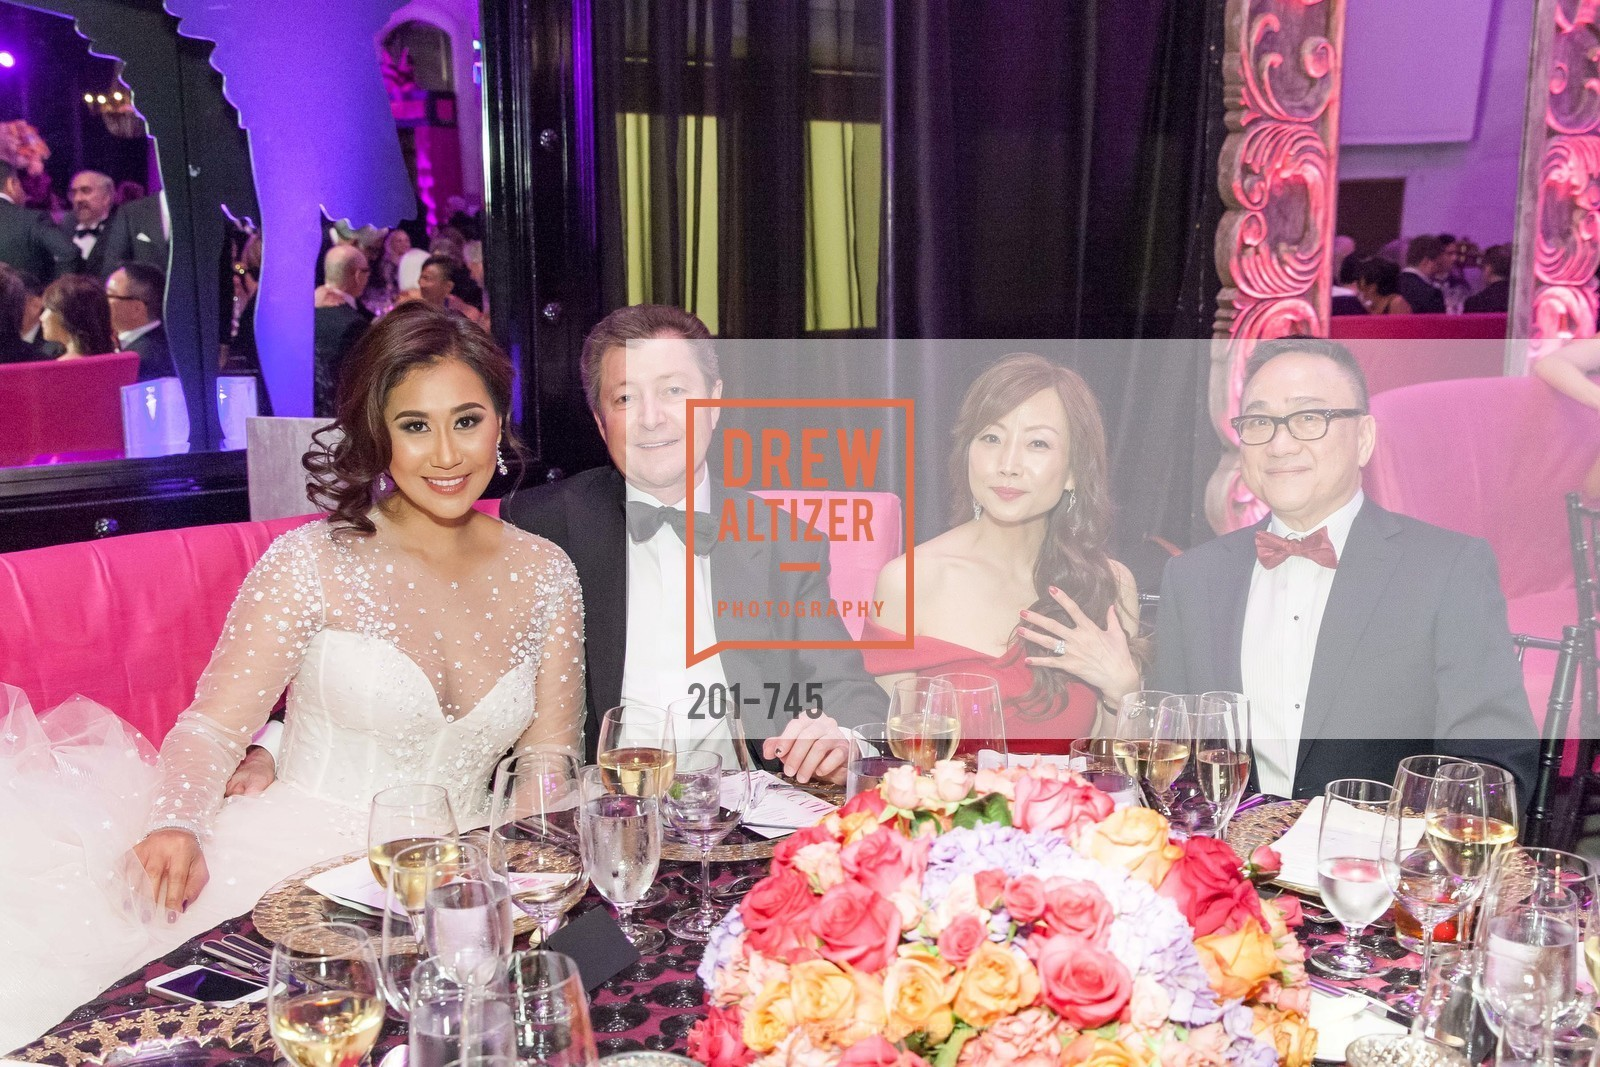 Nune Worraruji, James Tyree, Janet Wong, Francis Wong, San Francisco Ballet 2016 Opening Night Gala Part 2, San Francisco City Hall, January 21st, 2016,Drew Altizer, Drew Altizer Photography, full-service agency, private events, San Francisco photographer, photographer california